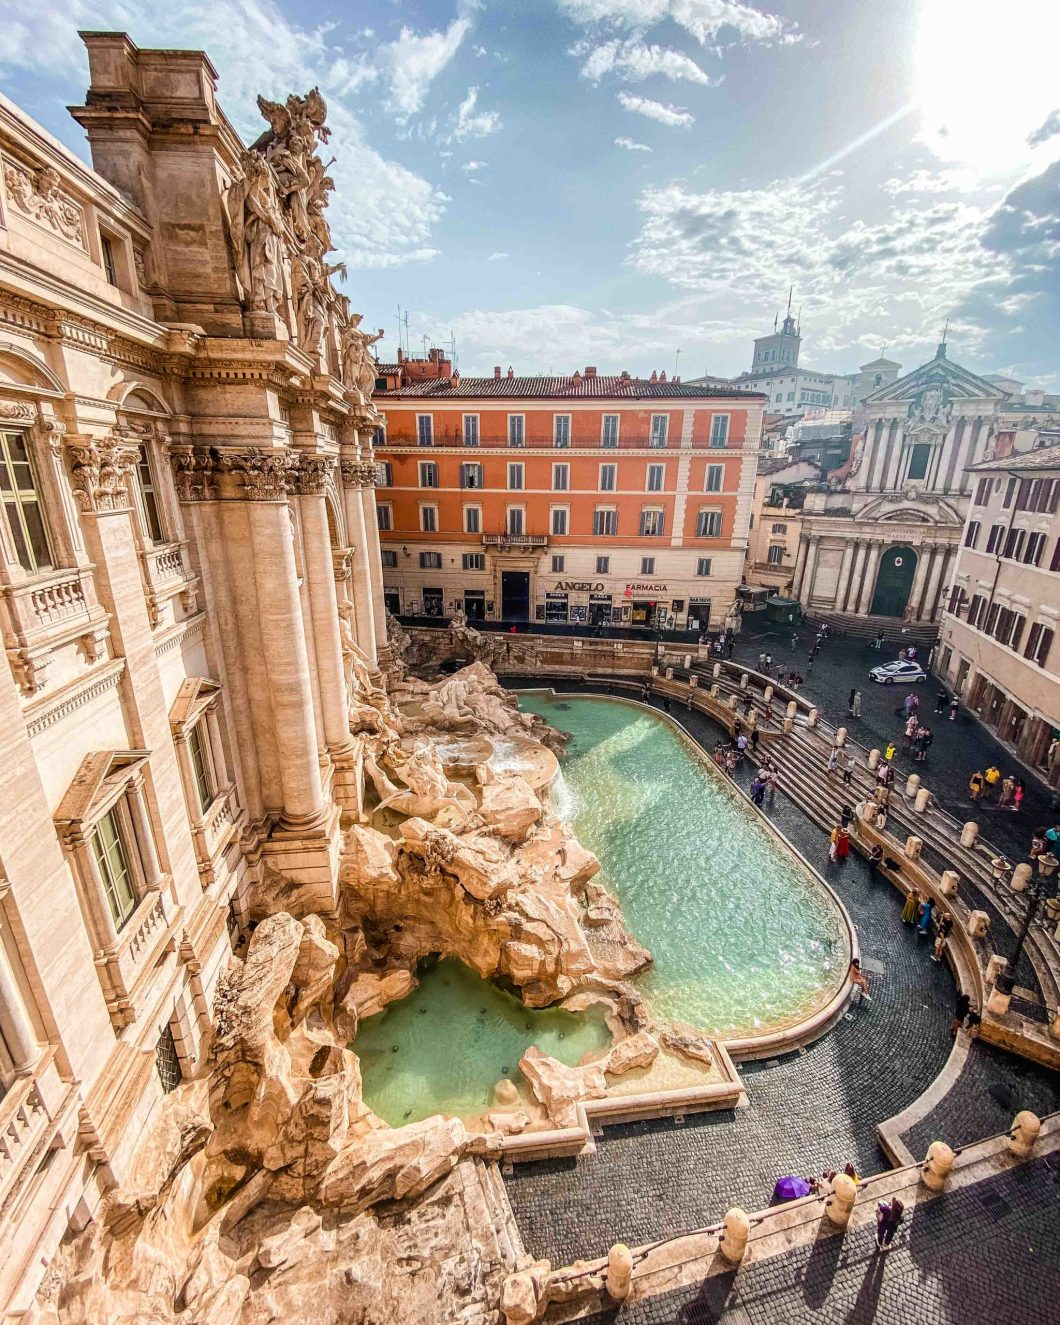 AirBnb luxury apartment with Trevi Fountain View in Rome